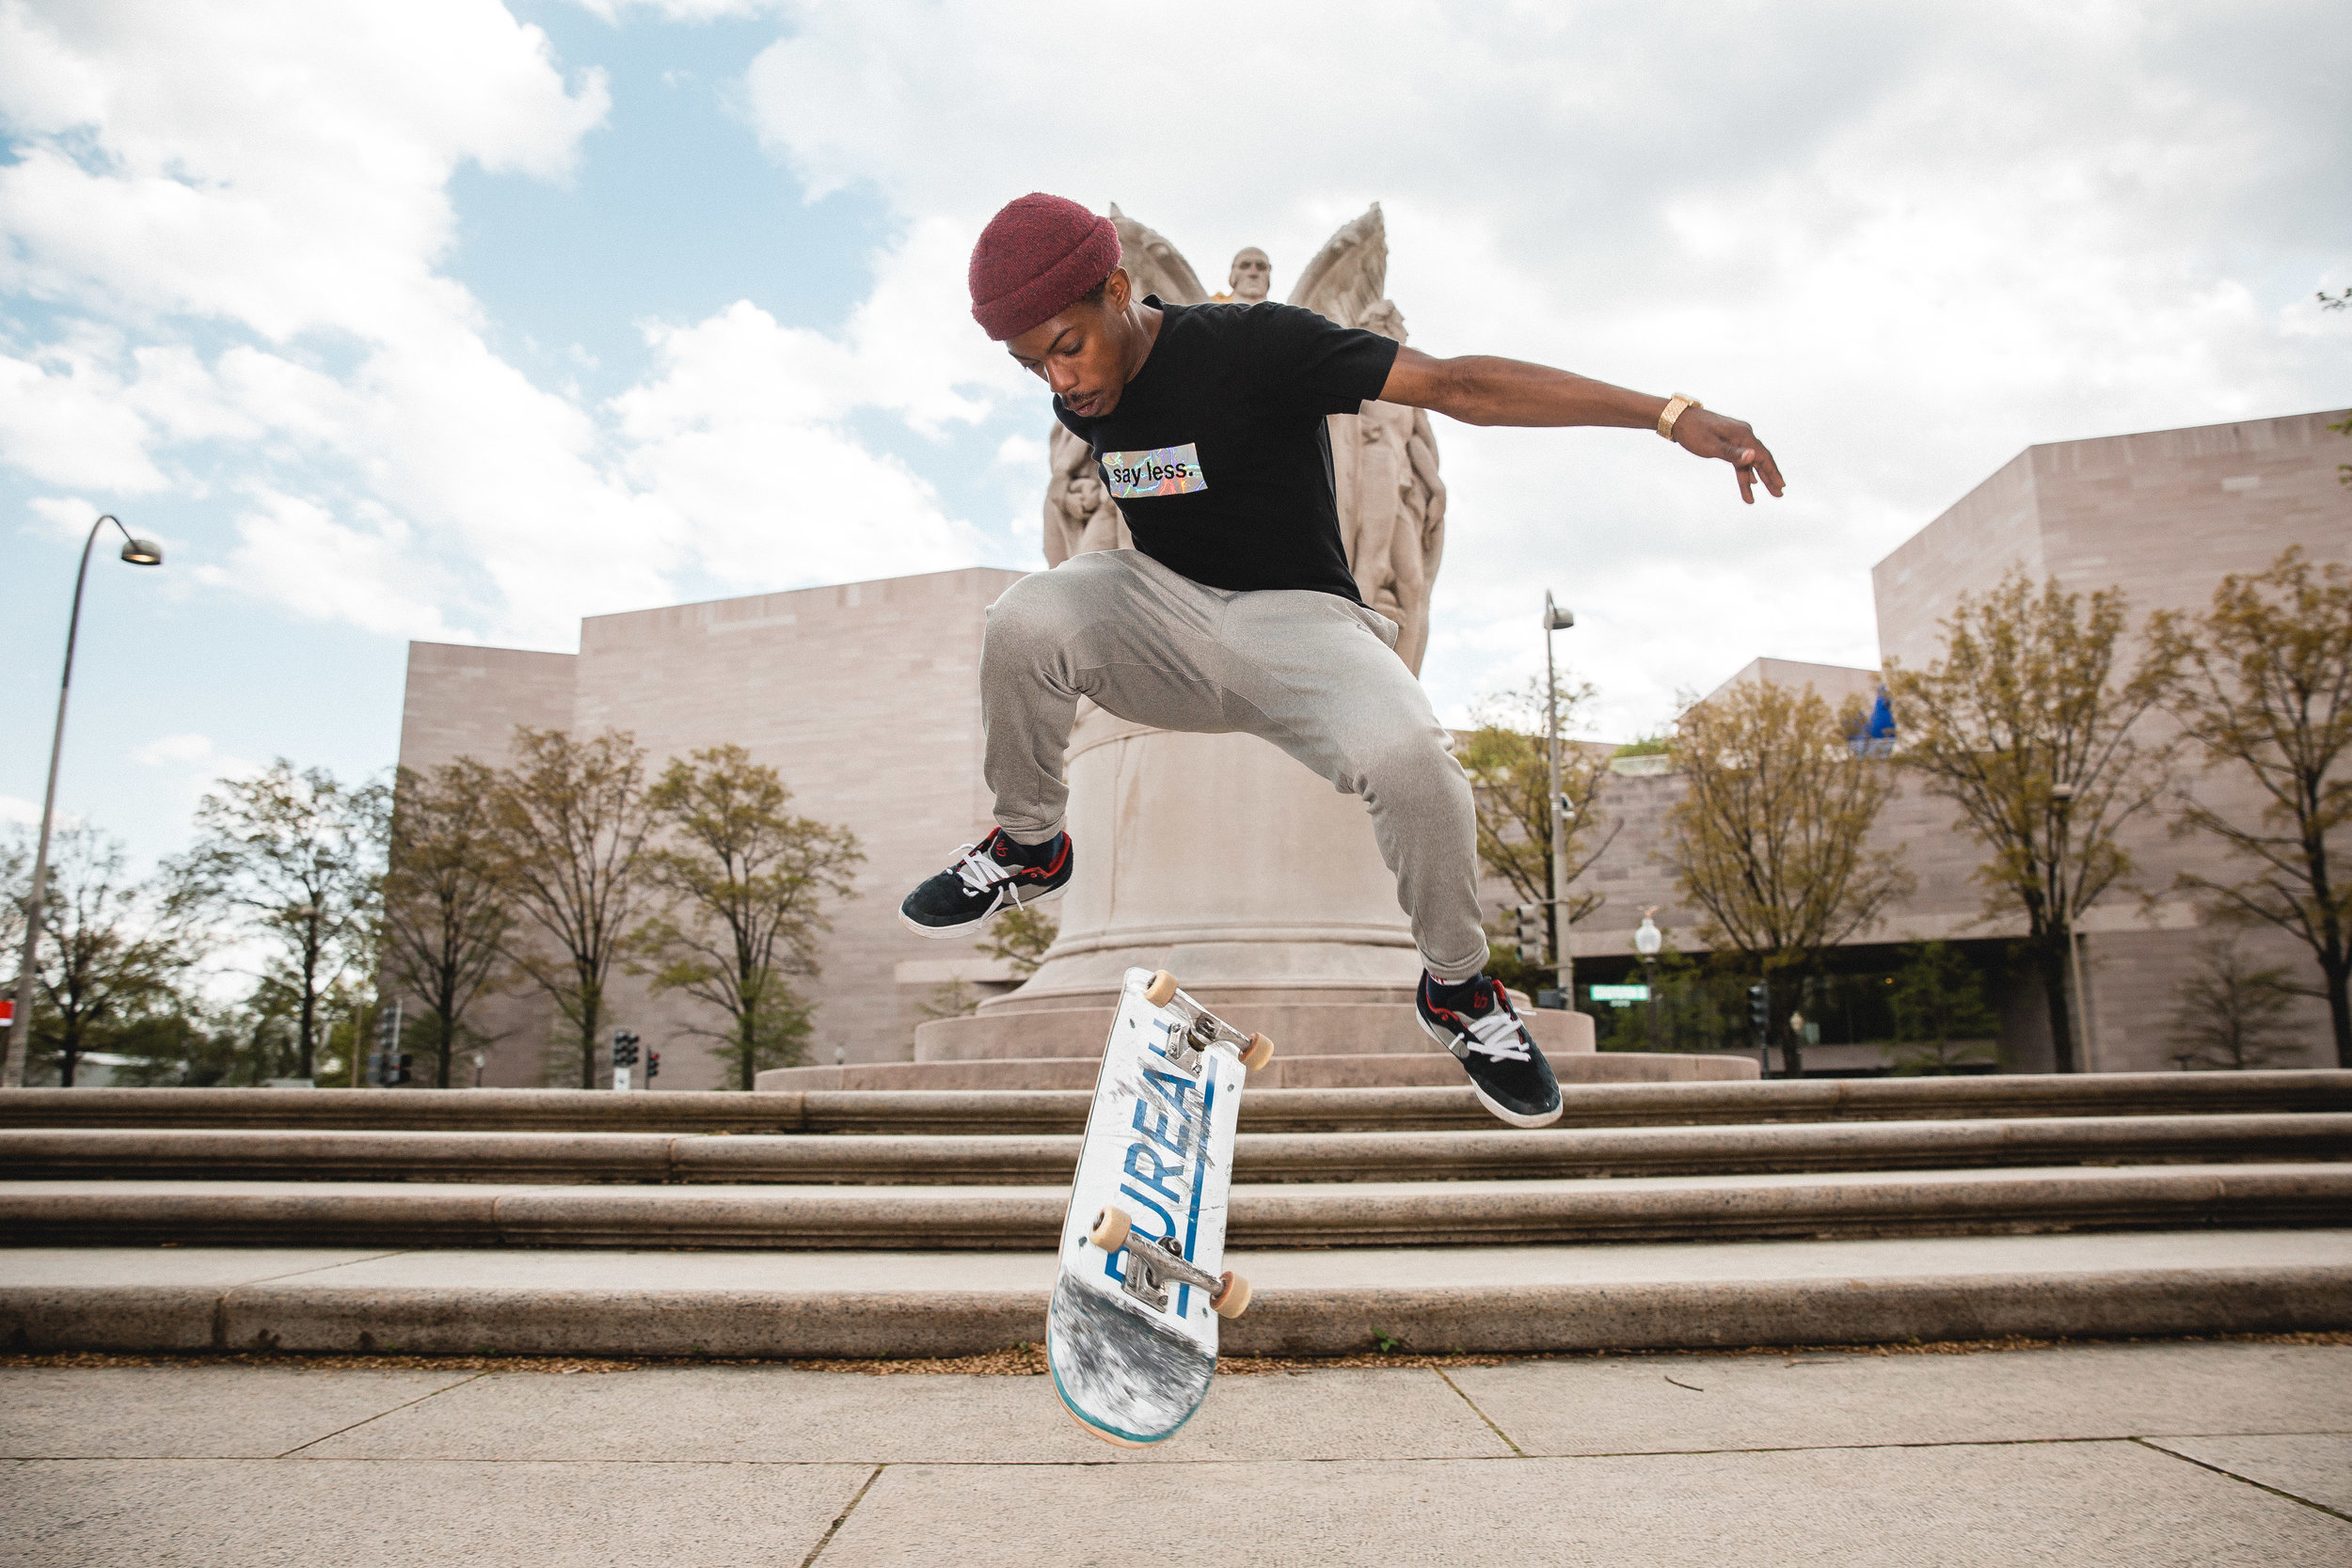 Downtown DC Skateboarding 4.28.18.jpg